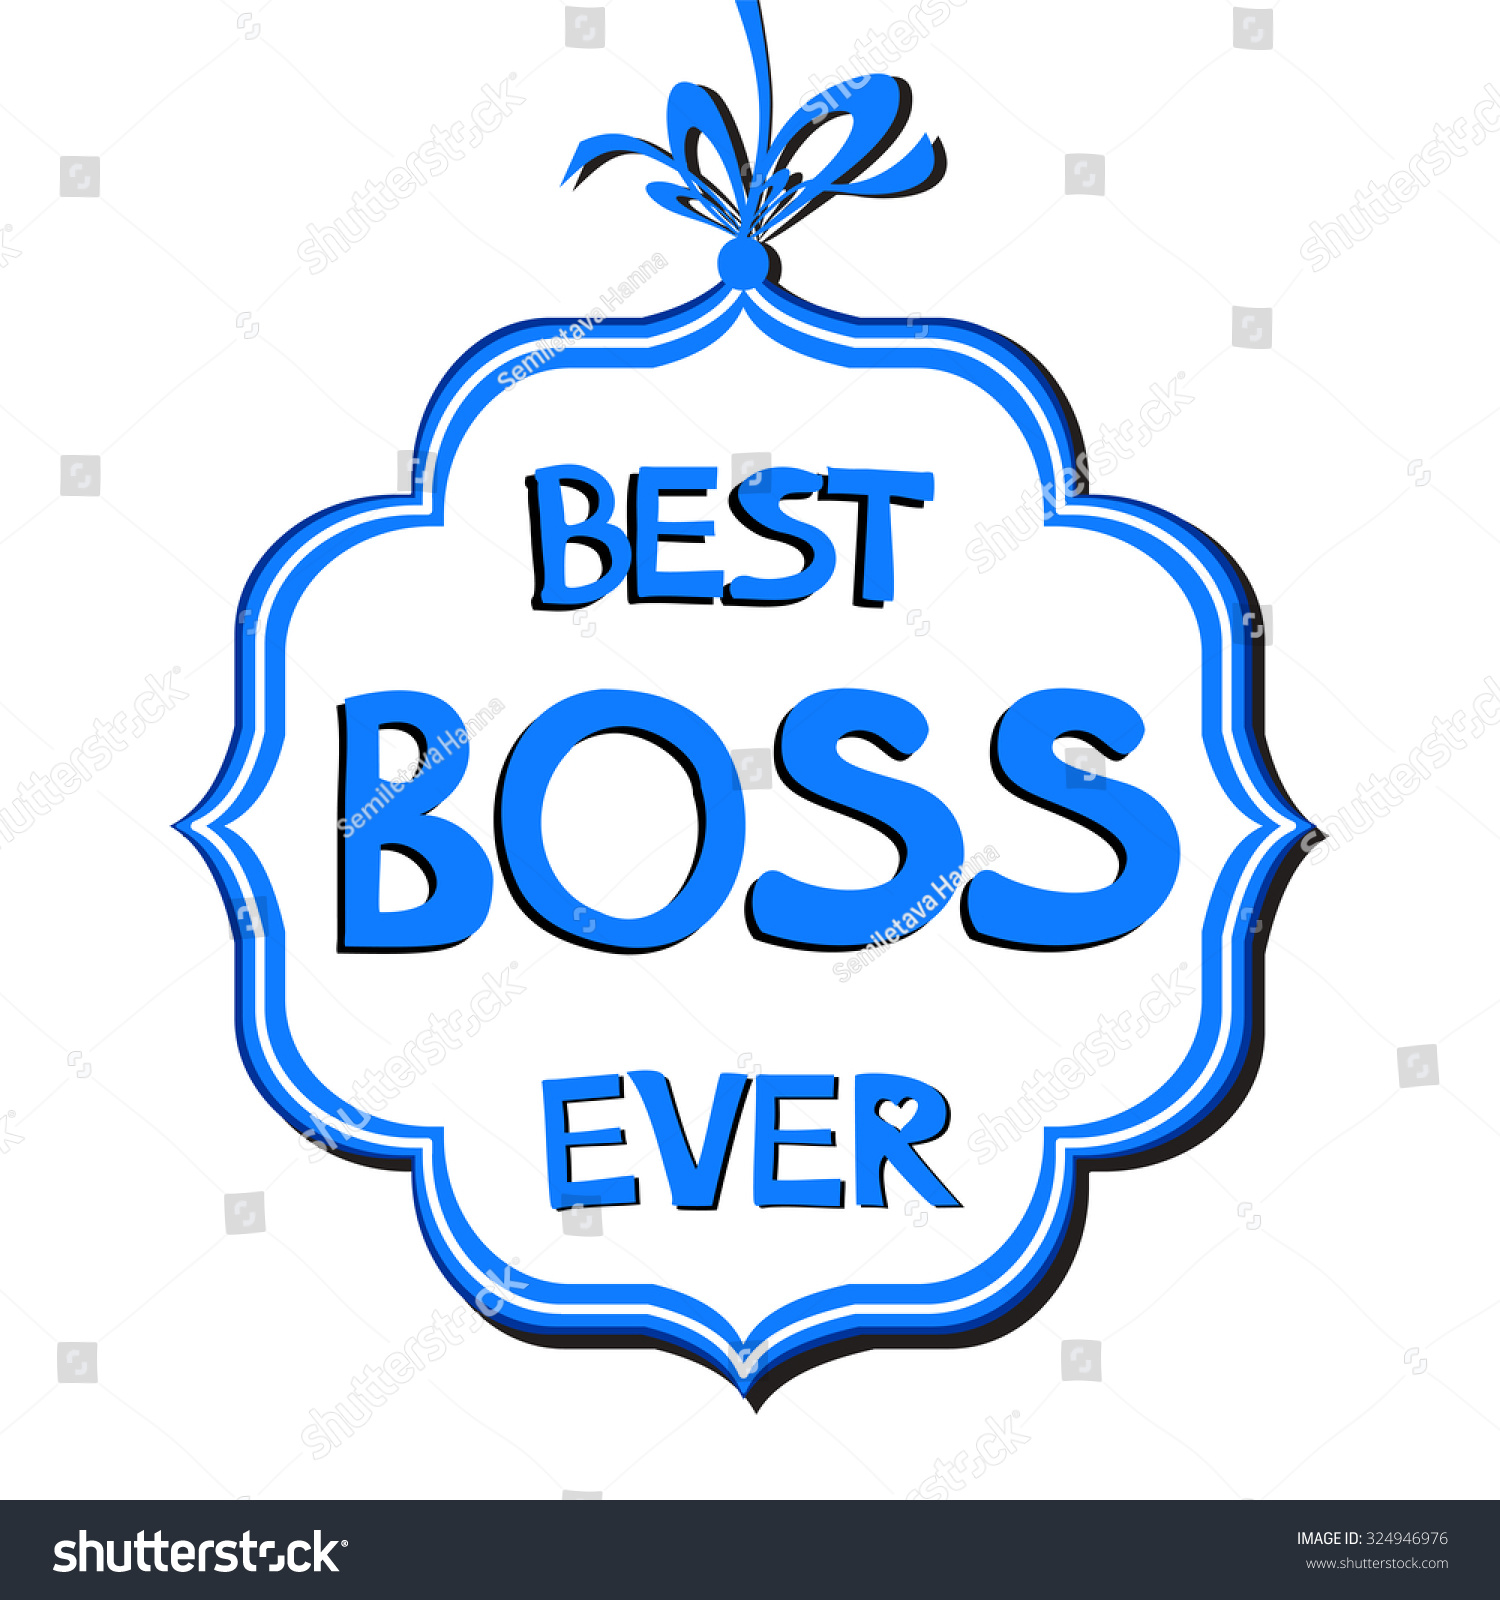 happy bosss day best boss ever stock vector 324946976 boss's day clipart funny boss day clipart quotes